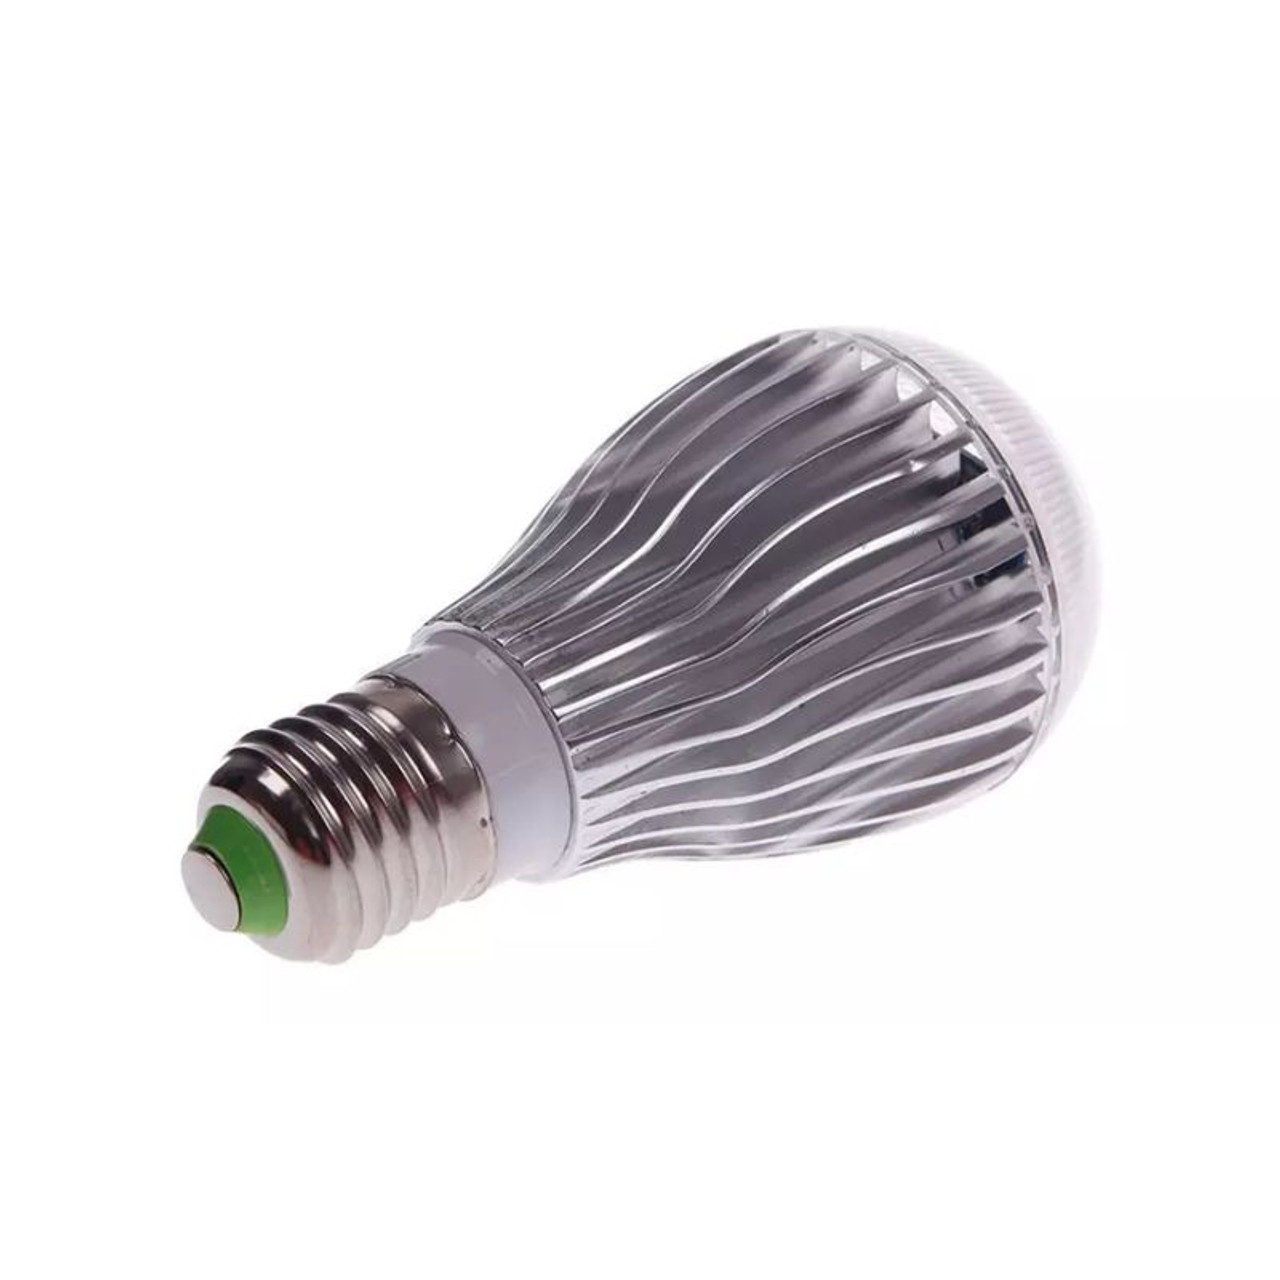 Color Changing LED Light Bulb with Remote Control - 1, 2, 4 or 8 Pack